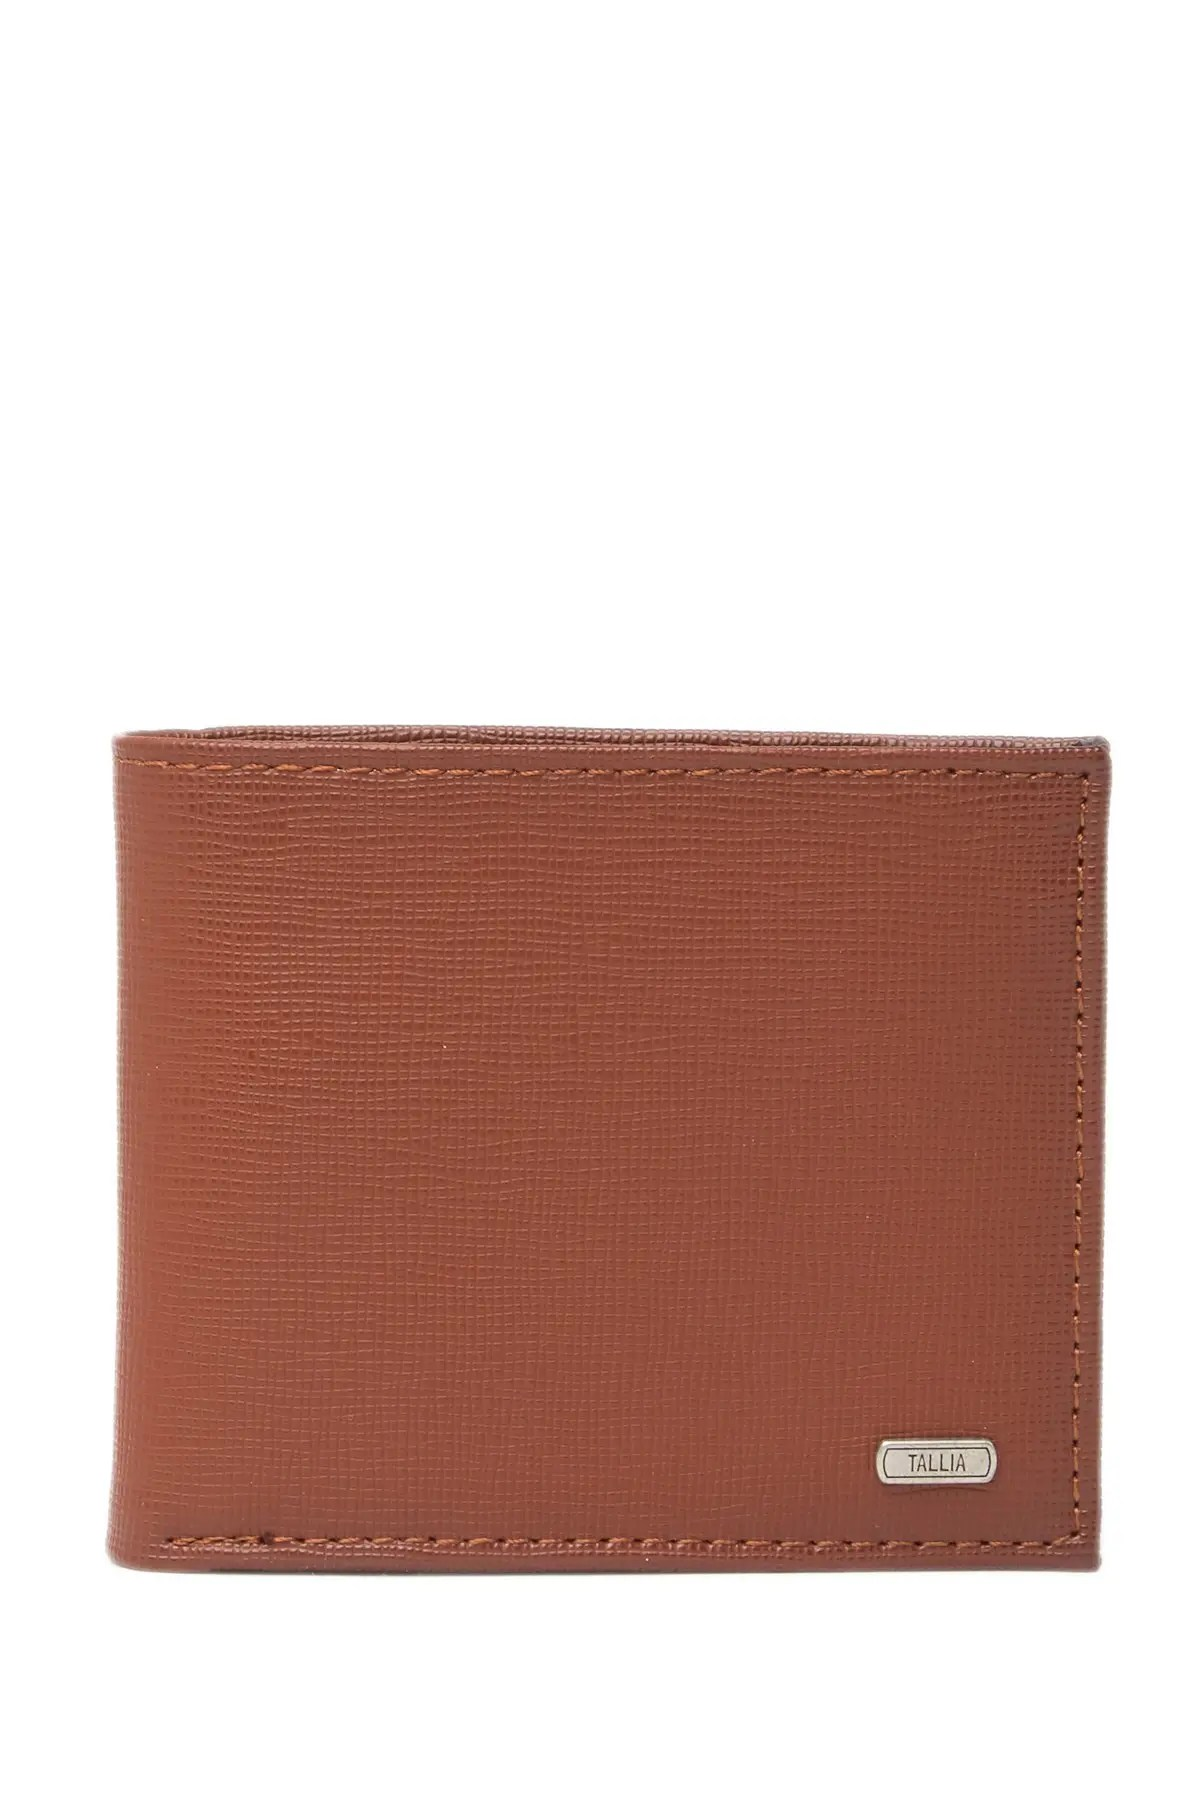 wallets for women clearance nordstrom